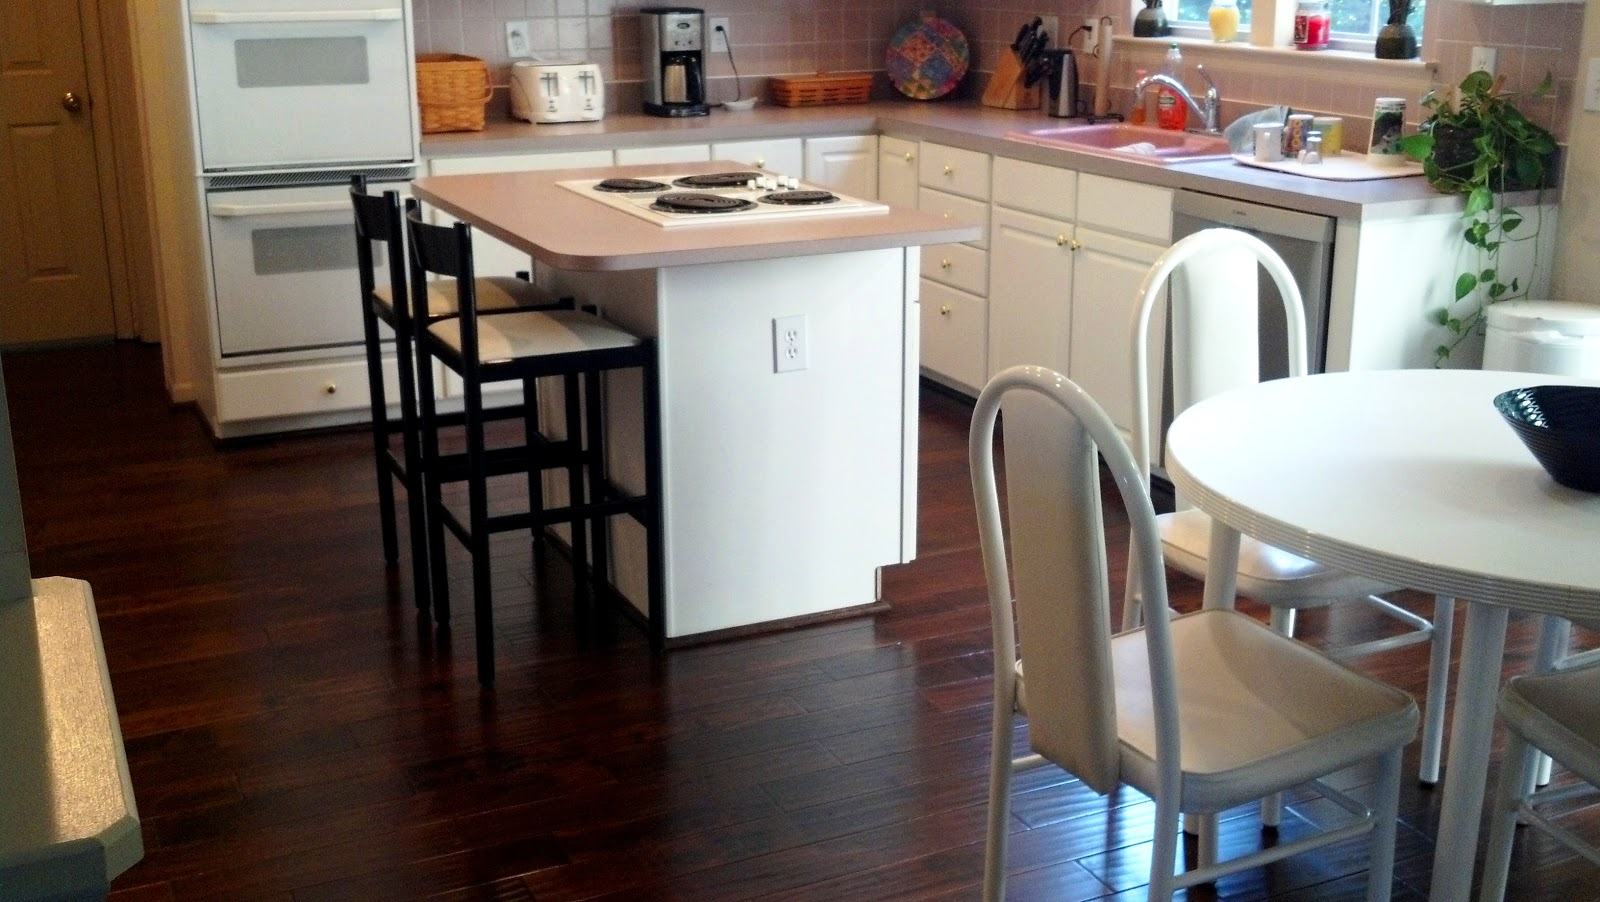 Let's Talk About Floors: [My Work] Hardwood+